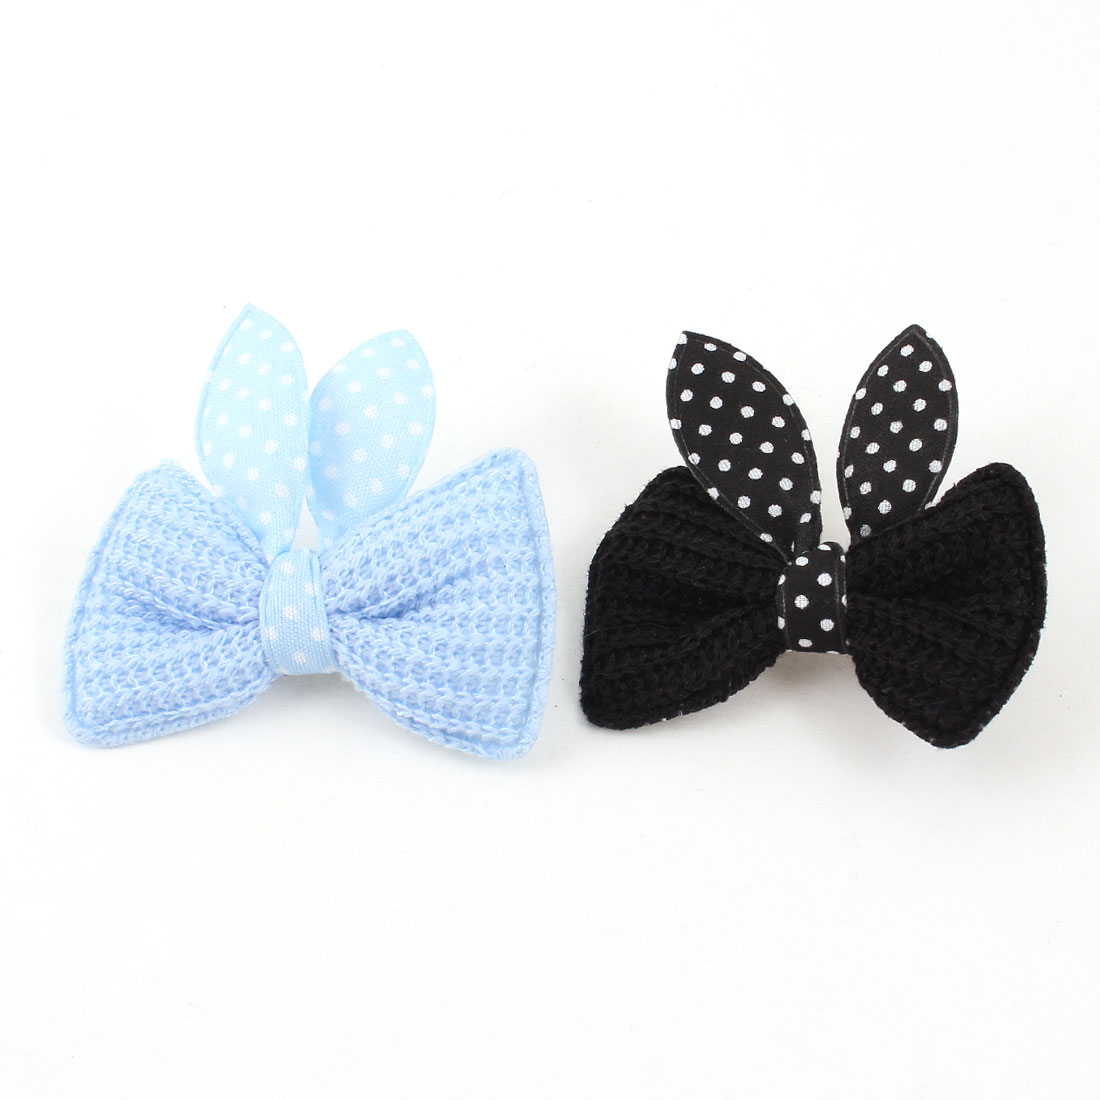 Pet Cat Dog Dot Bowknot Detail Alligator Hair Clip Hairpin Blue Black 2PCS